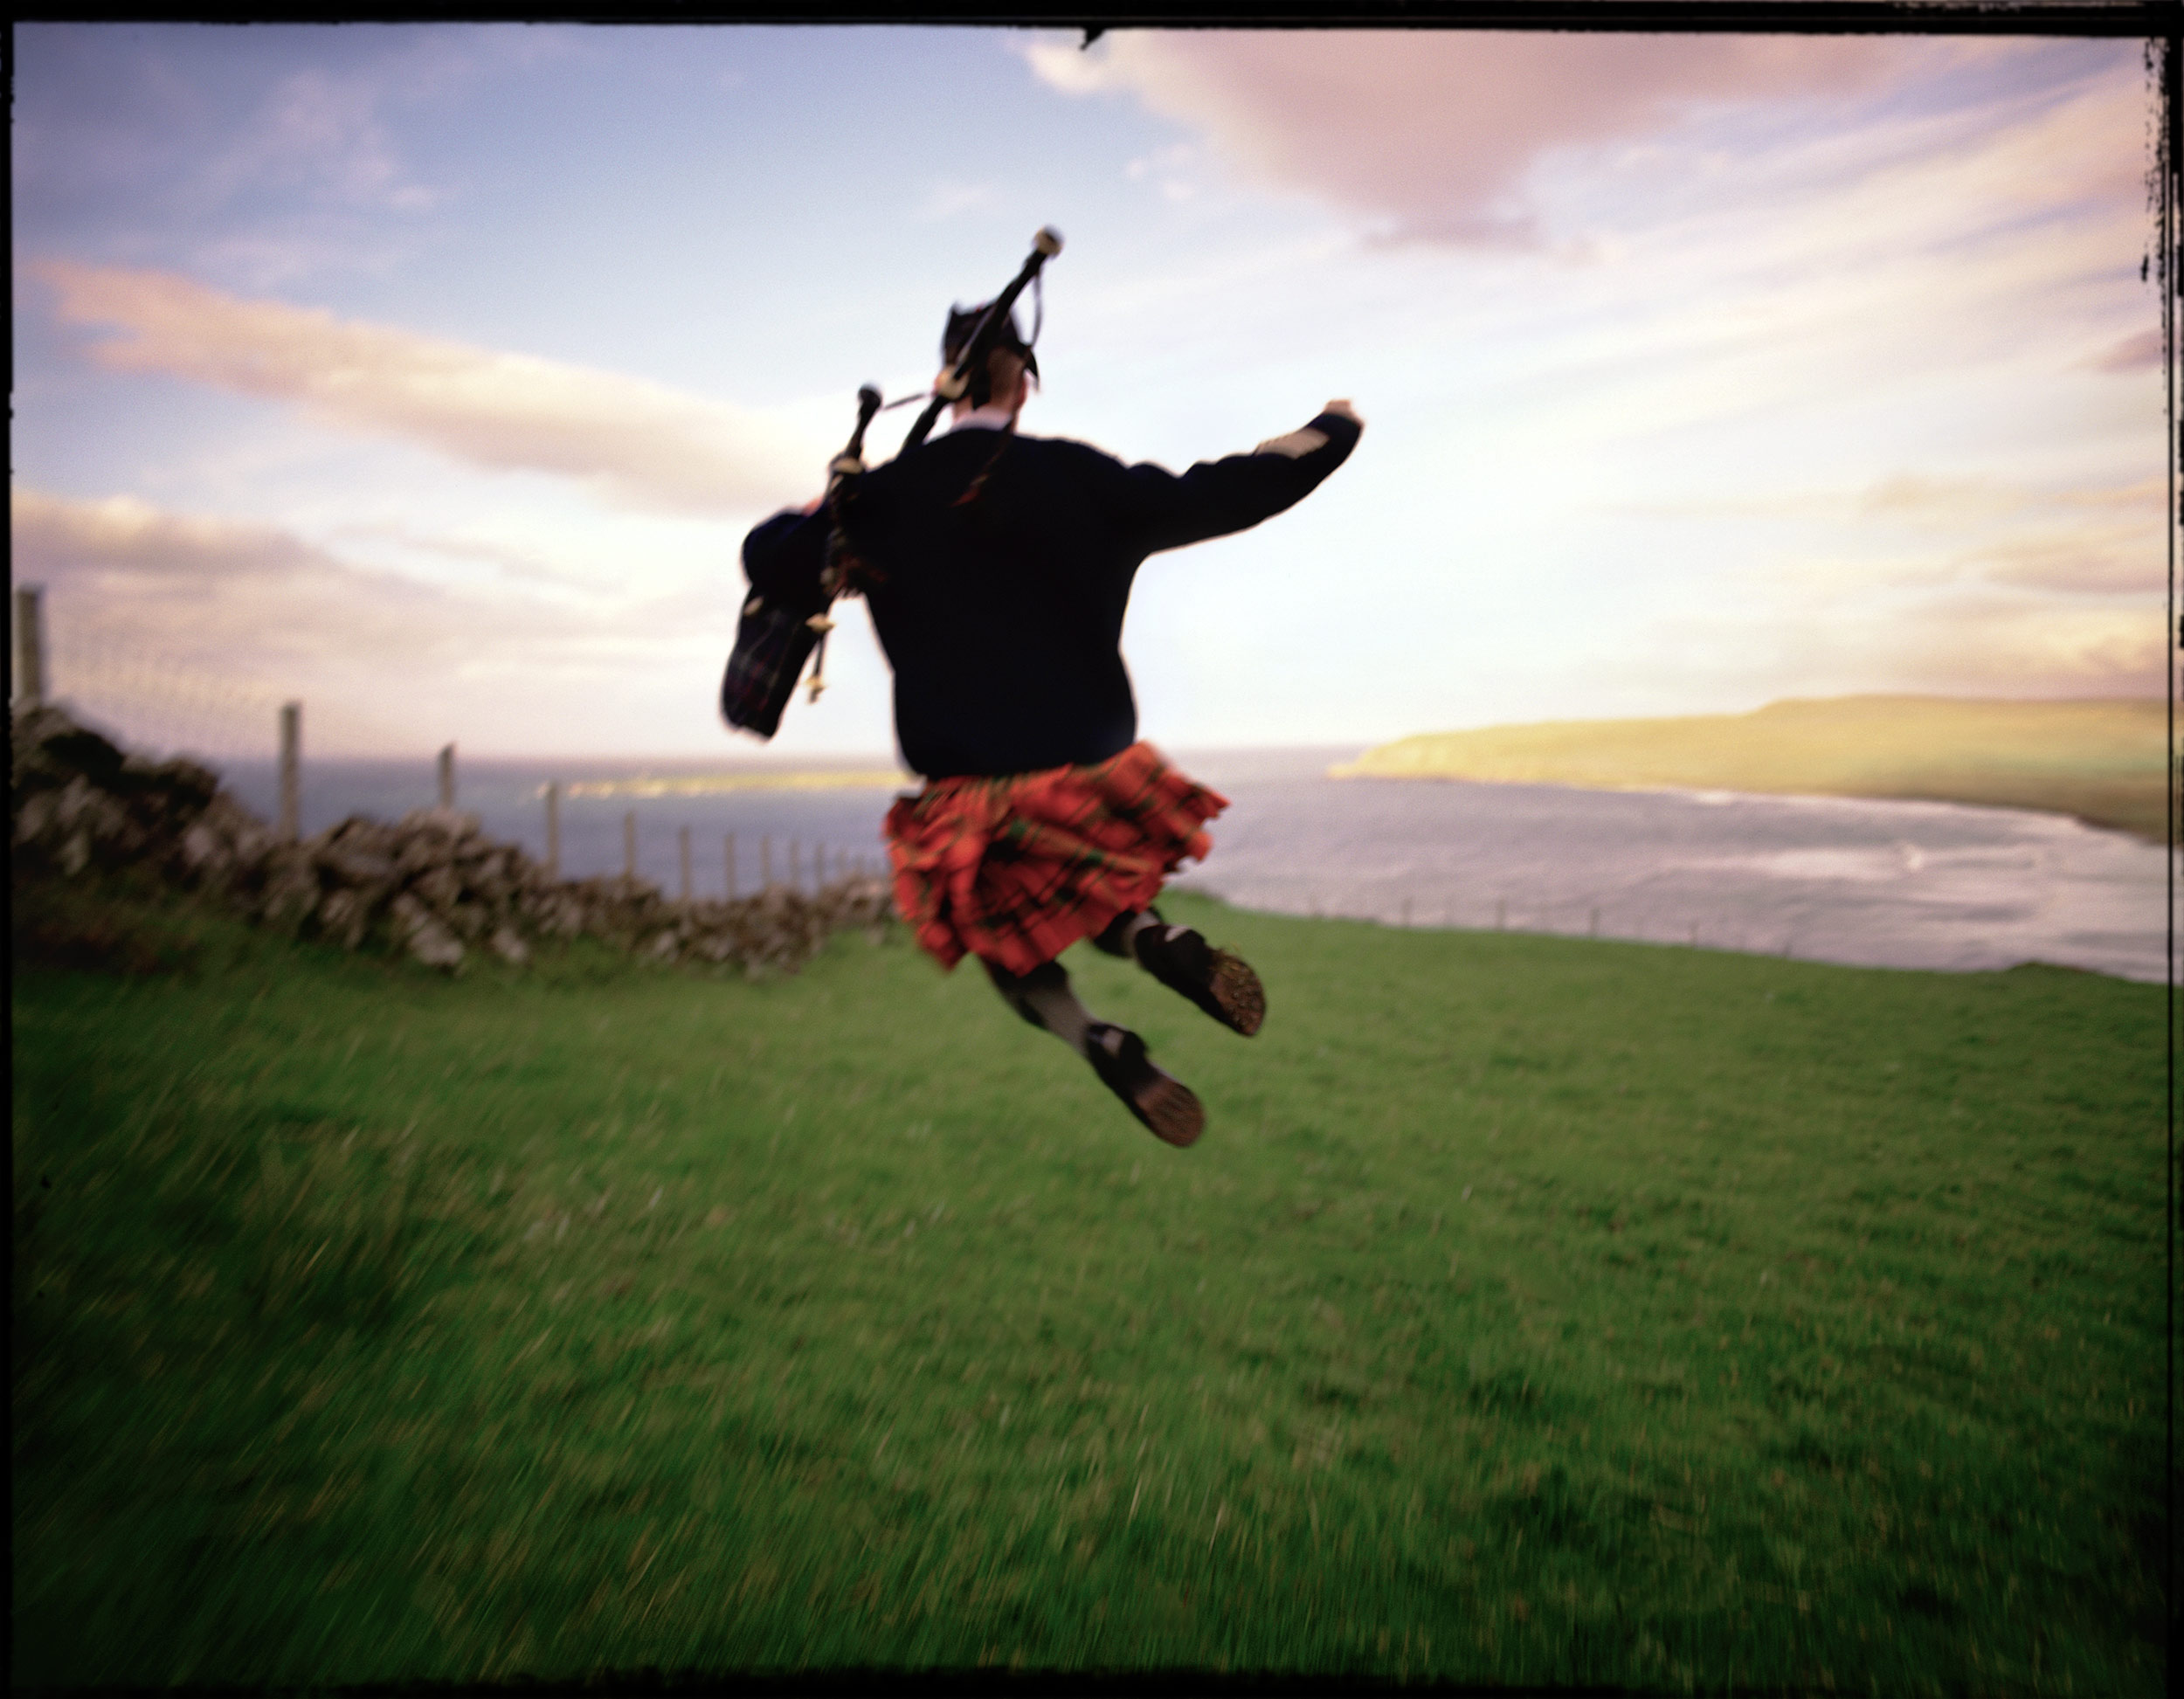 Bagpiper jumping in the air in a green pasture on the Isle of Skye, Scotland